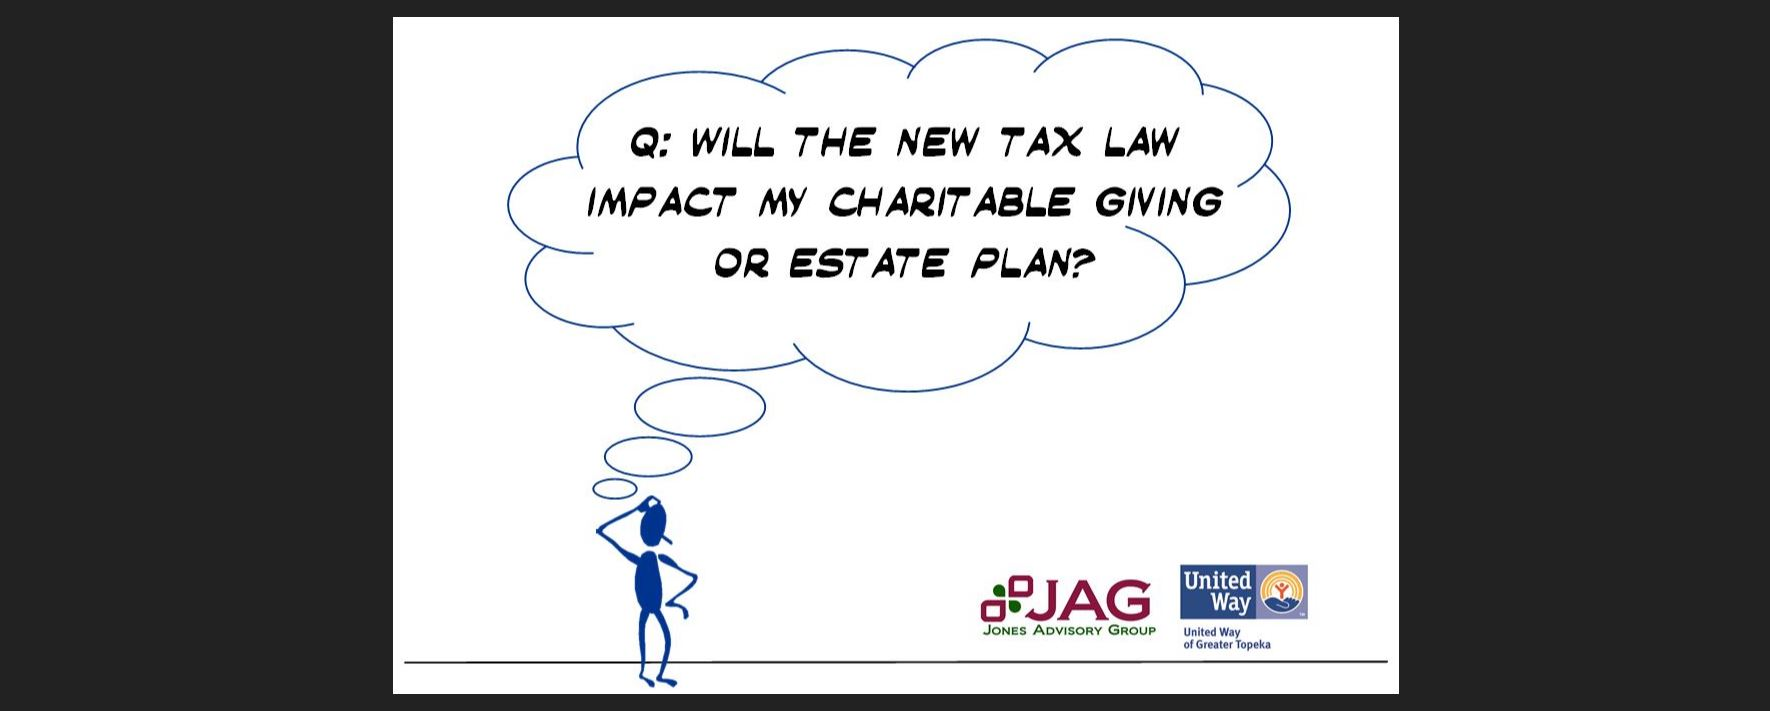 Cartoon man wondering if the new tax law will impact his charitable giving or estate plan. Jones Advisory Group logo. United Way of Greater Topeka logo.